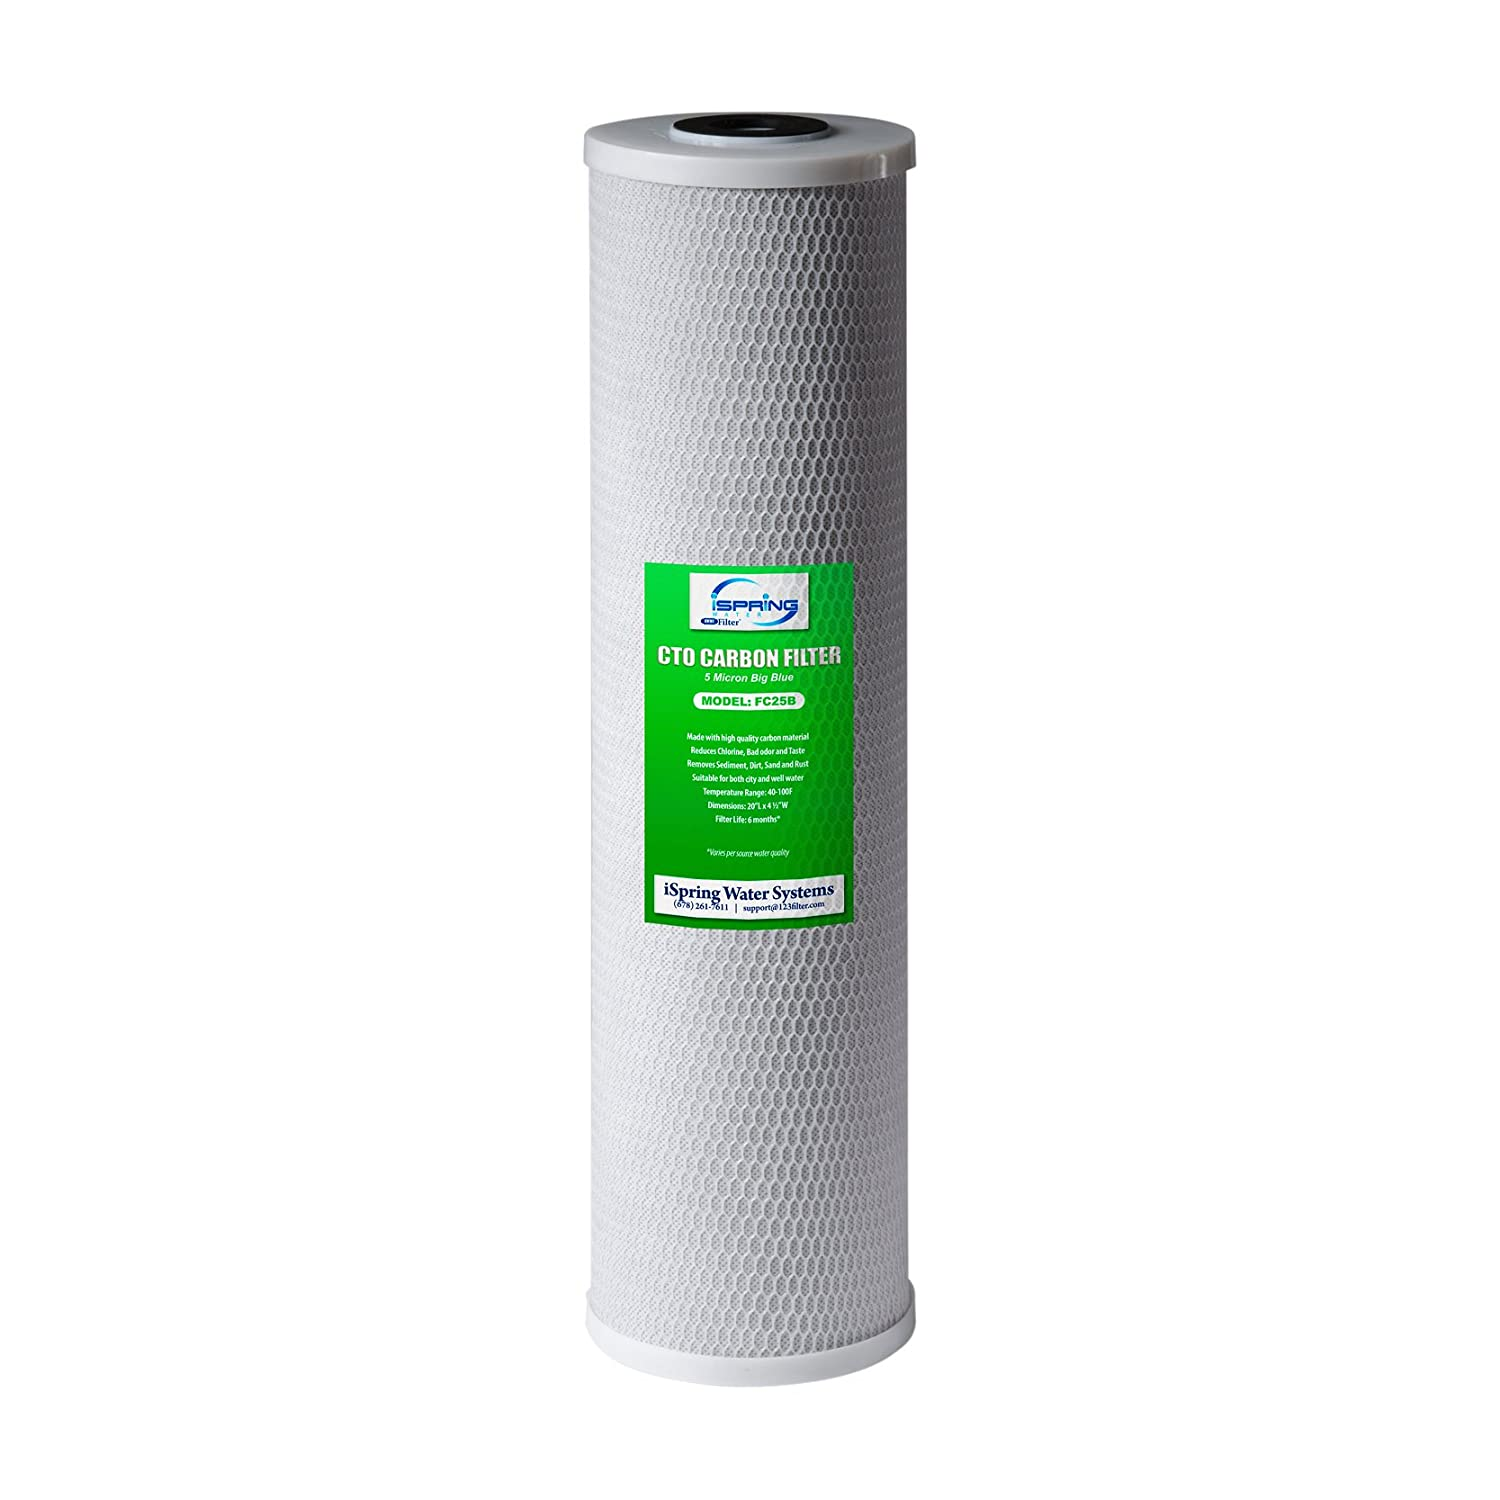 """iSpring FC25B High Capacity 20"""" x 4.5"""" Water Filter Replacement Cartridges - CTO Carbon Block - Fits Standard 20"""" x 4.5"""" Whole House Water Filtration Systems - Reducing up to 99% Chlorine - Pack of 1"""